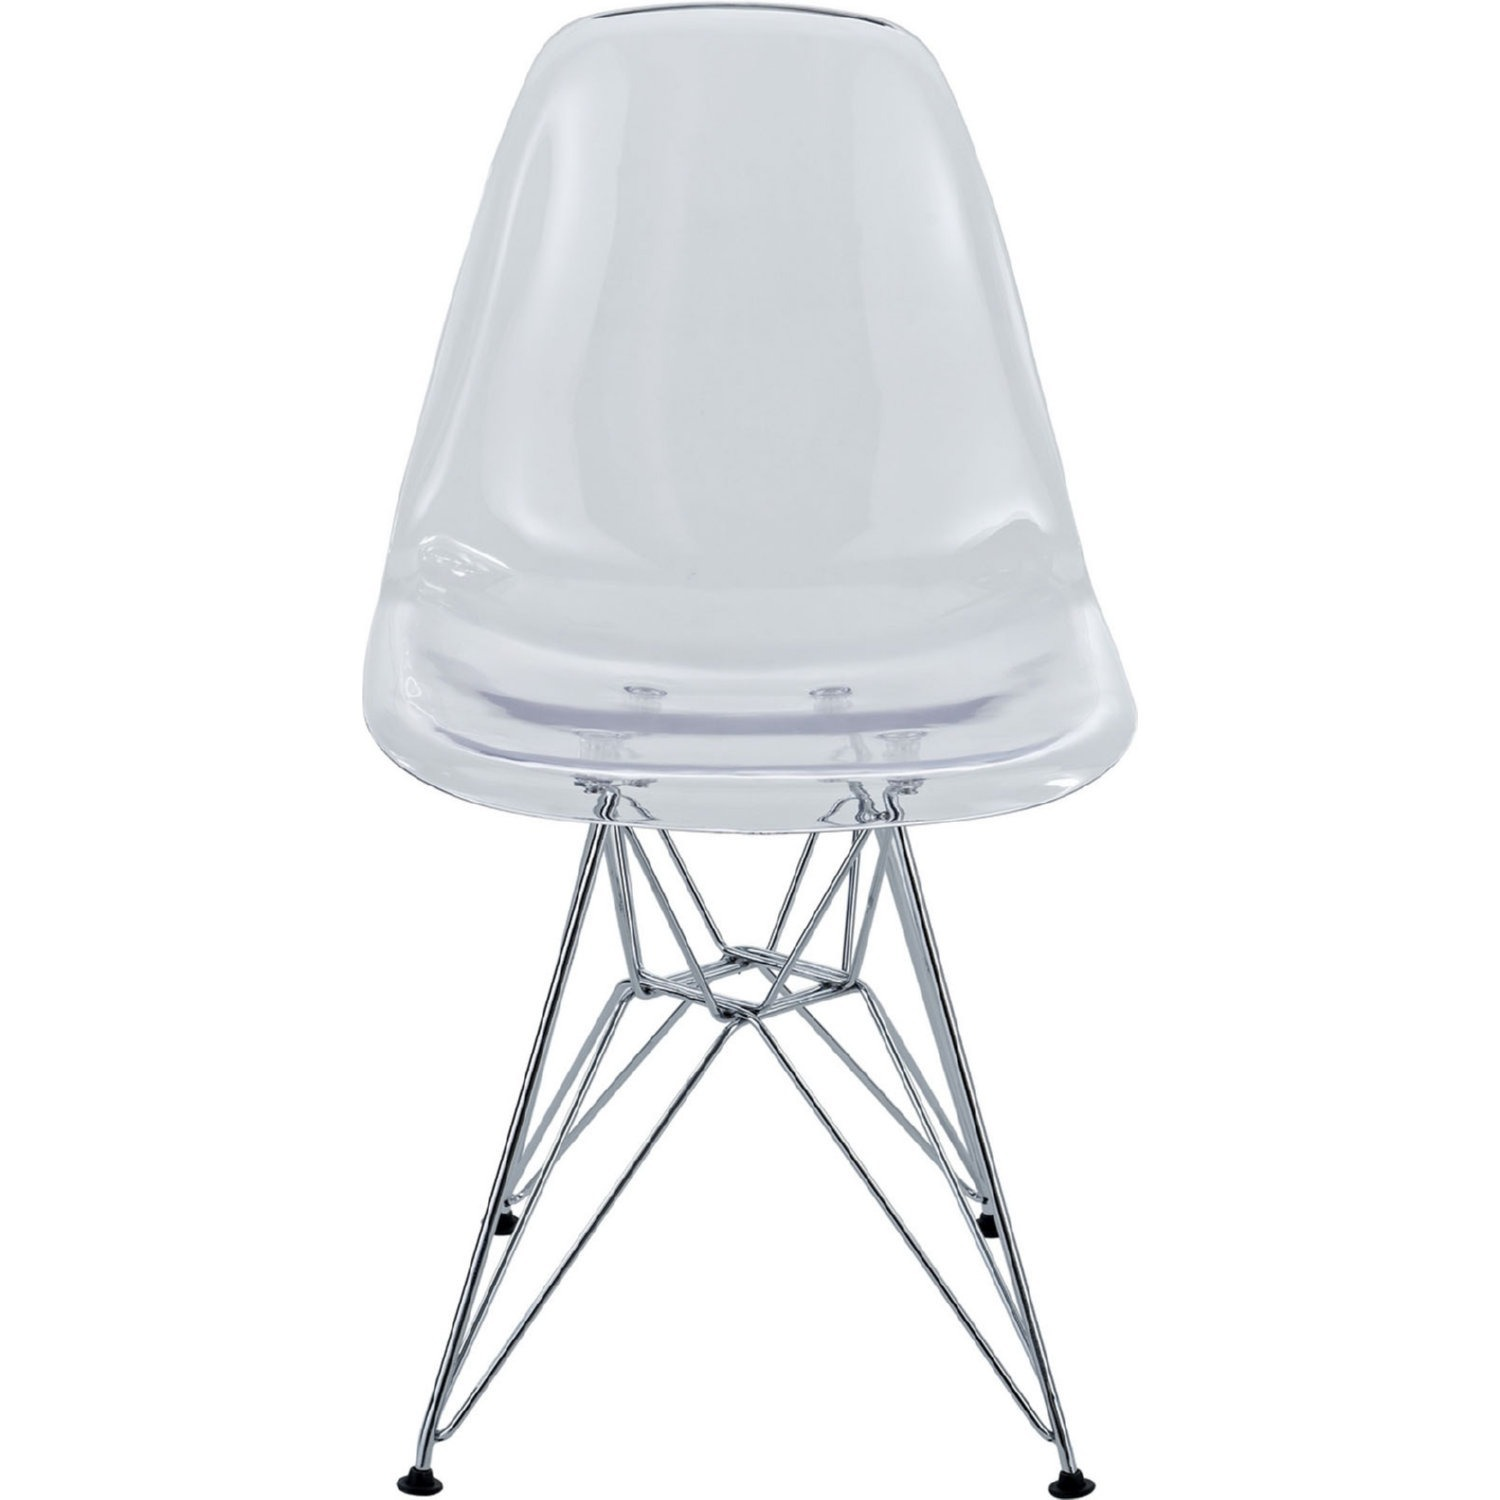 Modern Dining Chair In Clear Finish W/ Wire Legs - image-1